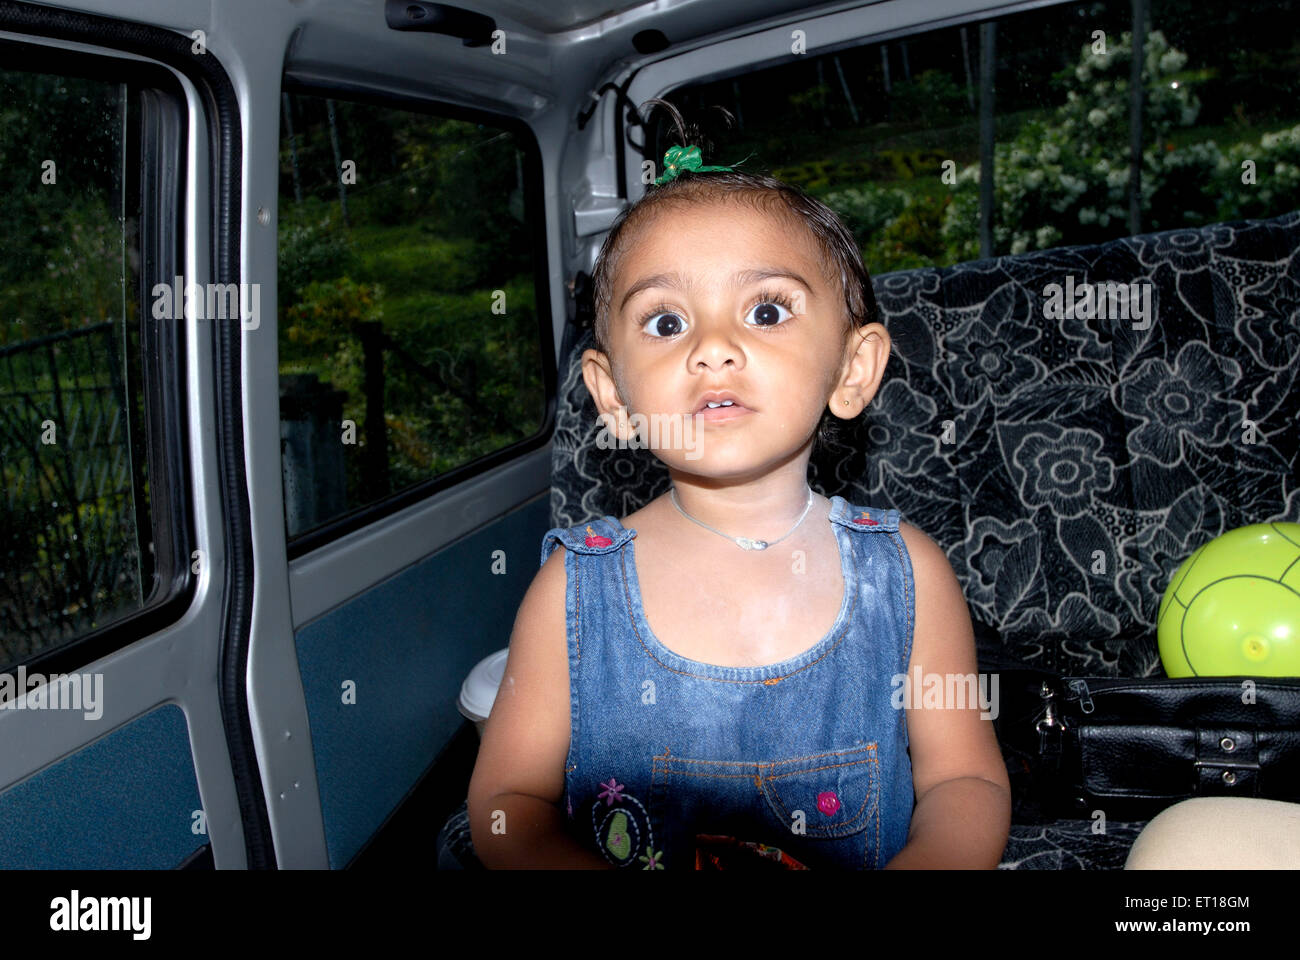 Indian girl child looking surprised eyes wide open sitting in car -  MR#736L - Stock Image